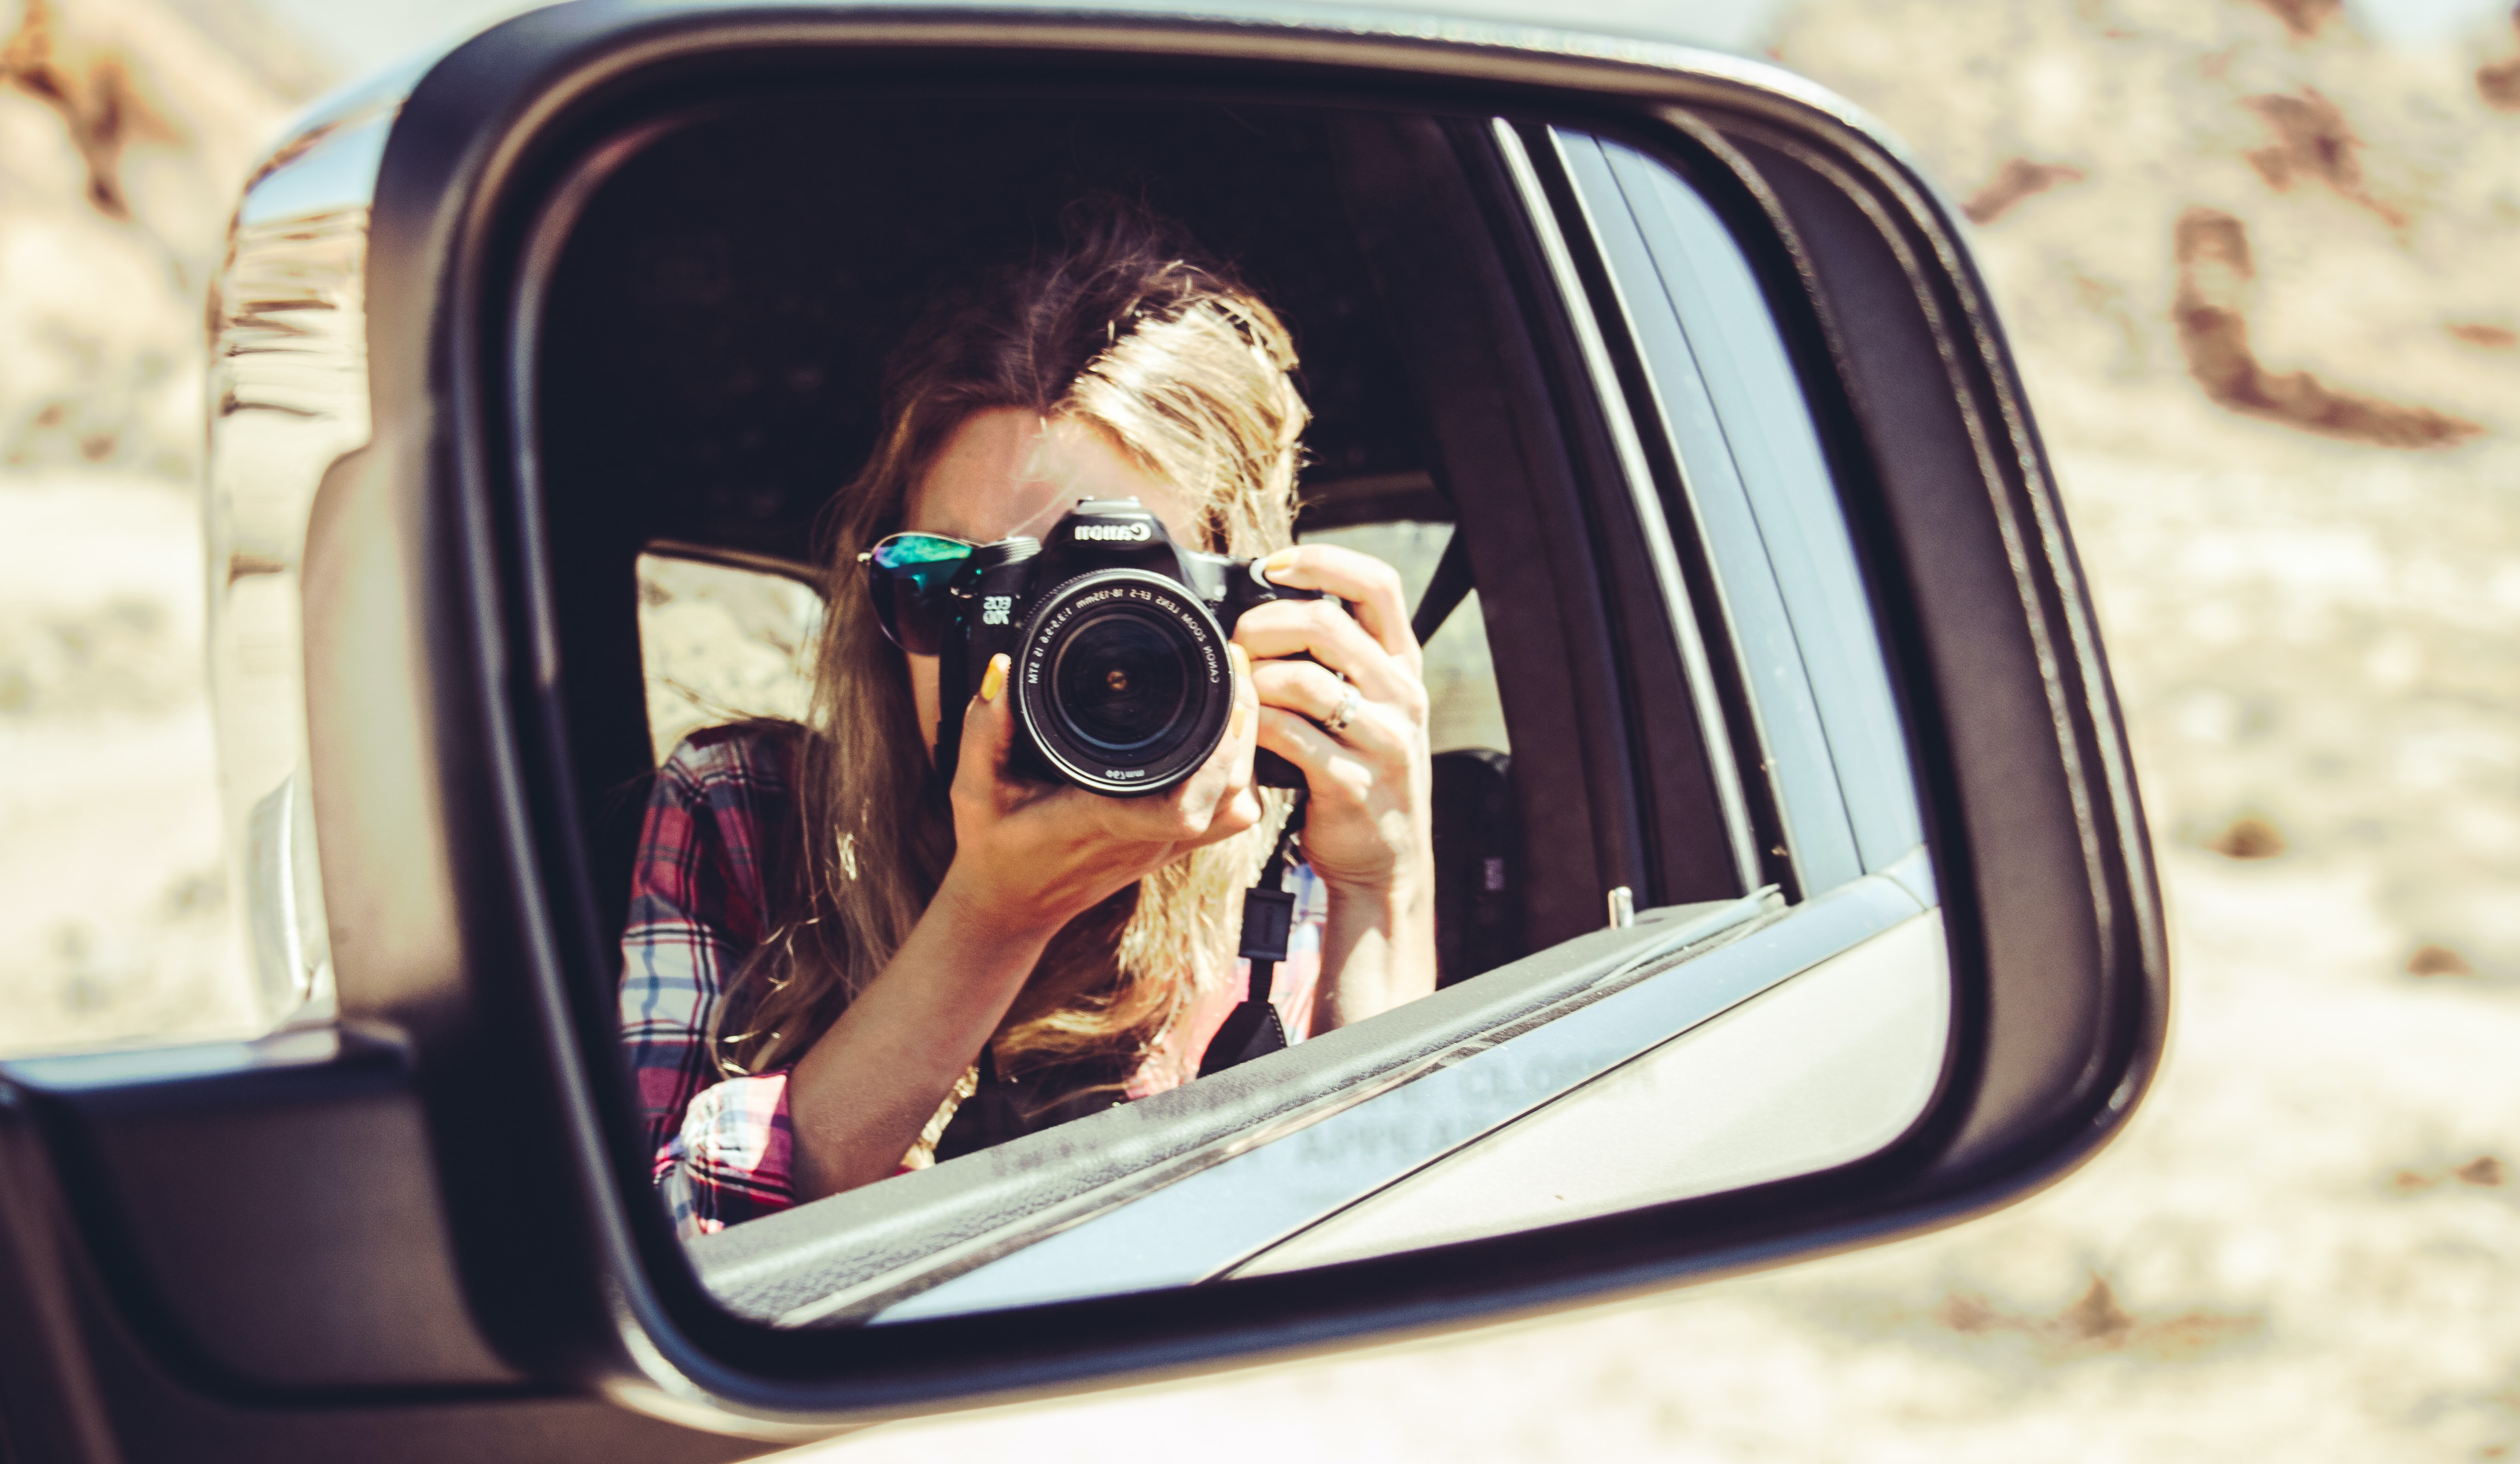 woman holding DSLR camera facing side mirror